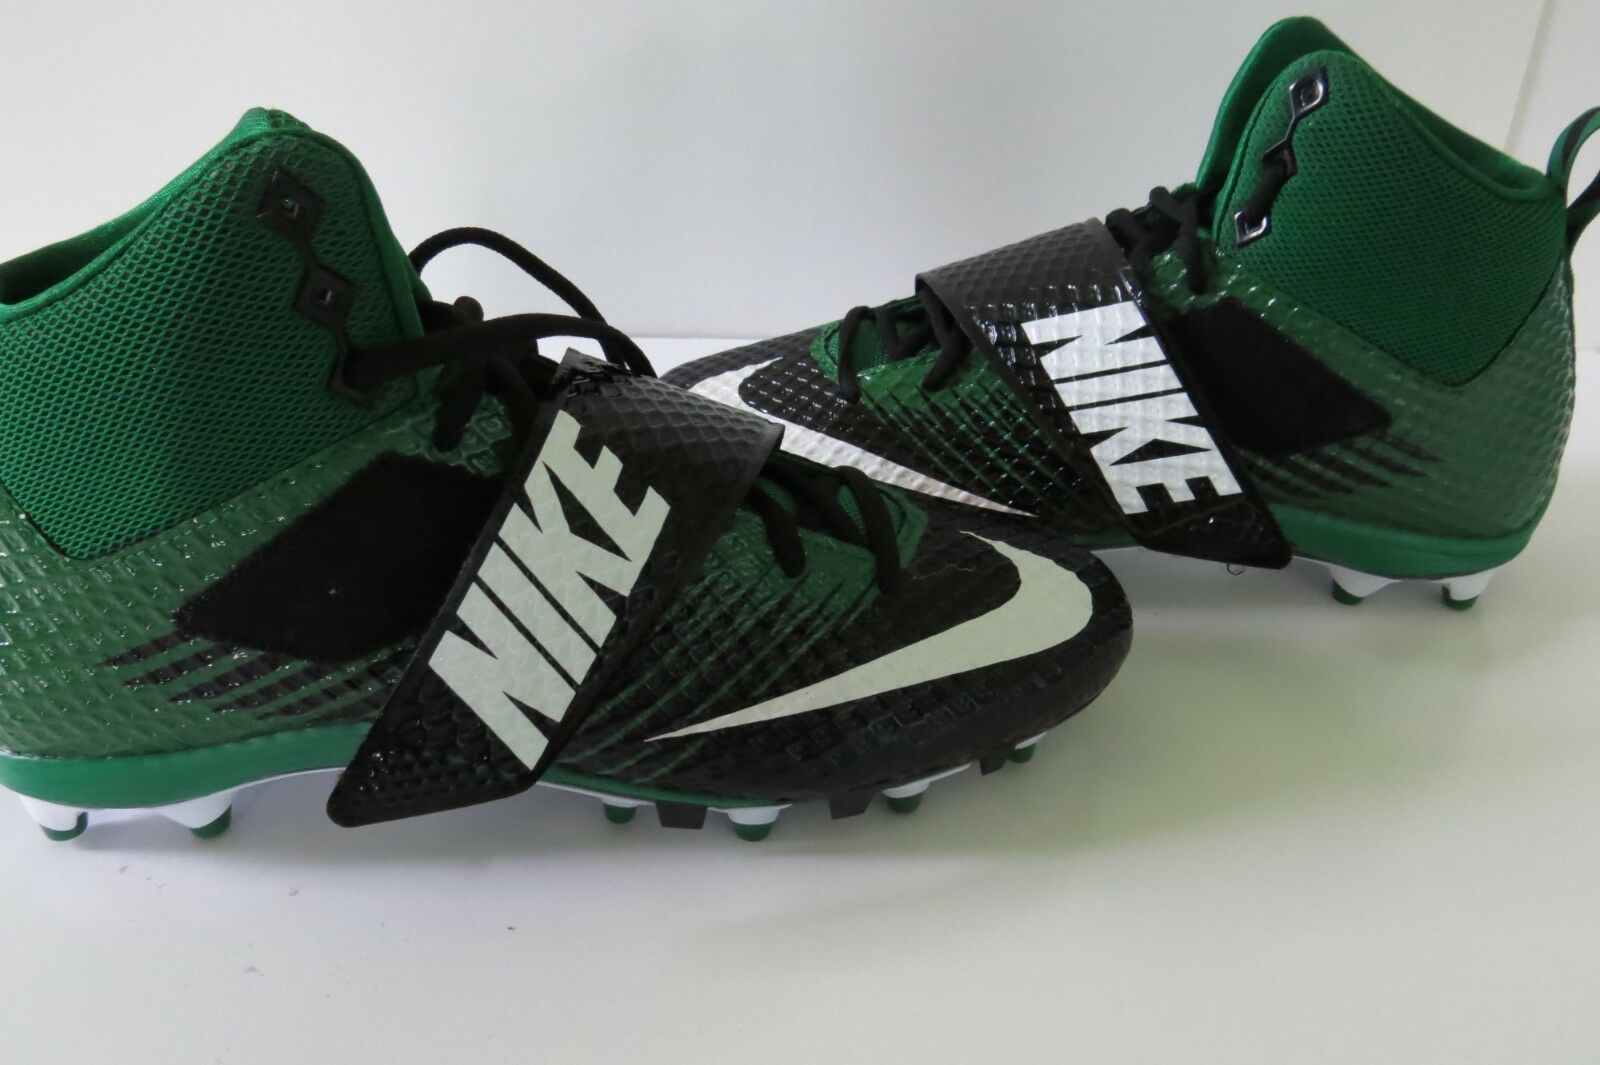 NIB NIKE Pro Lunarbeast Pro NIKE TD Size 10 Uomo Football Cleats Shoes Nero Green 70540c